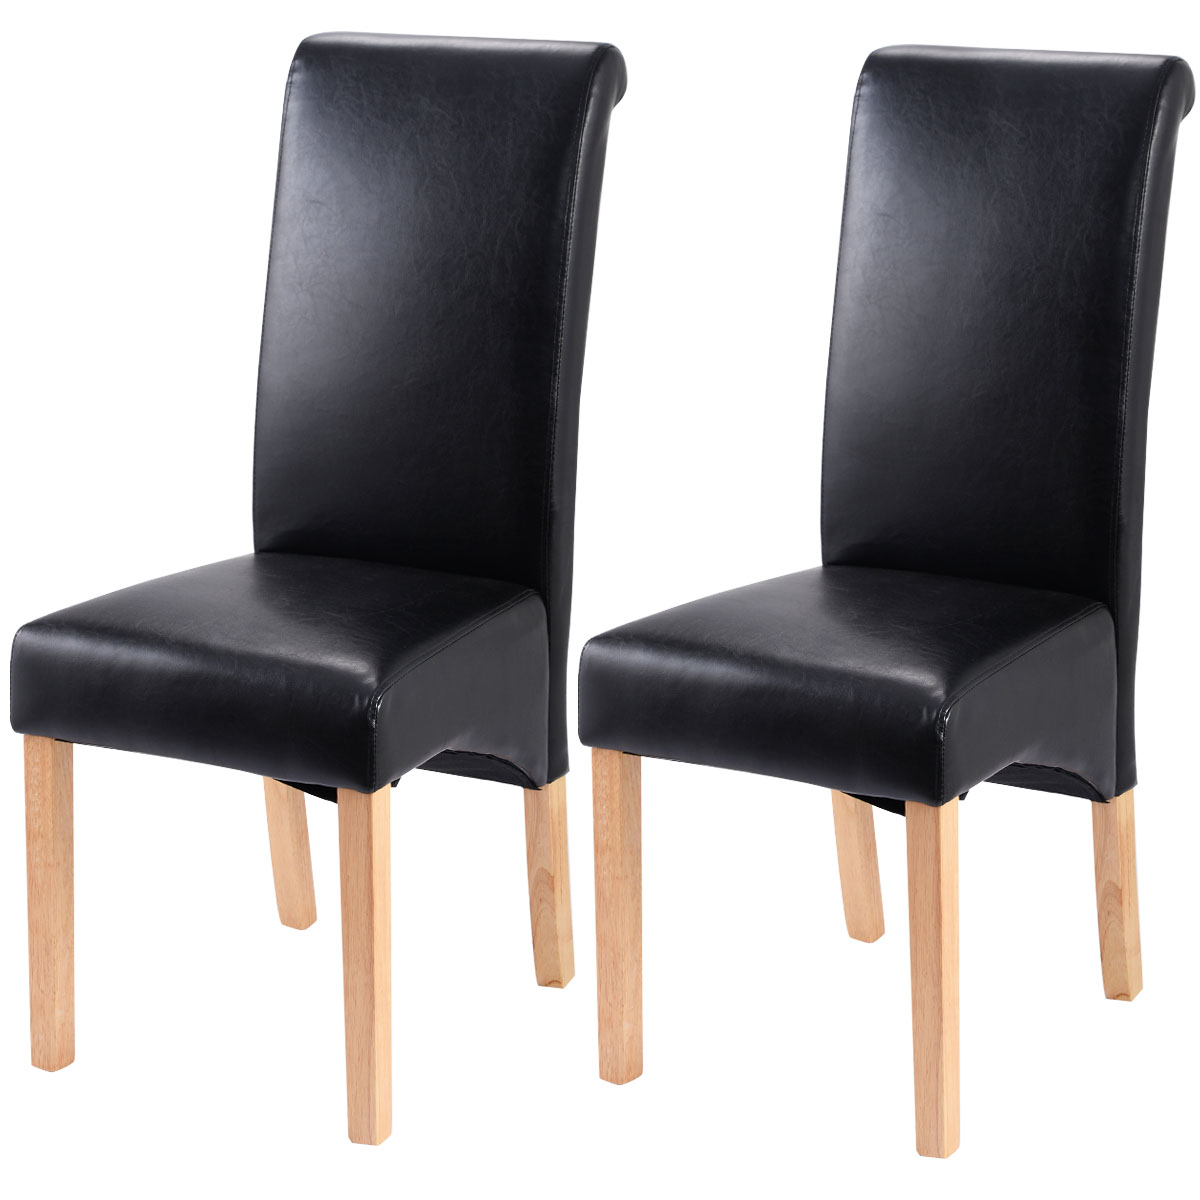 Costway Set of 2 Leather Wood Contemporary Dining Chairs Elegant Design Home Room (Black) by Costway